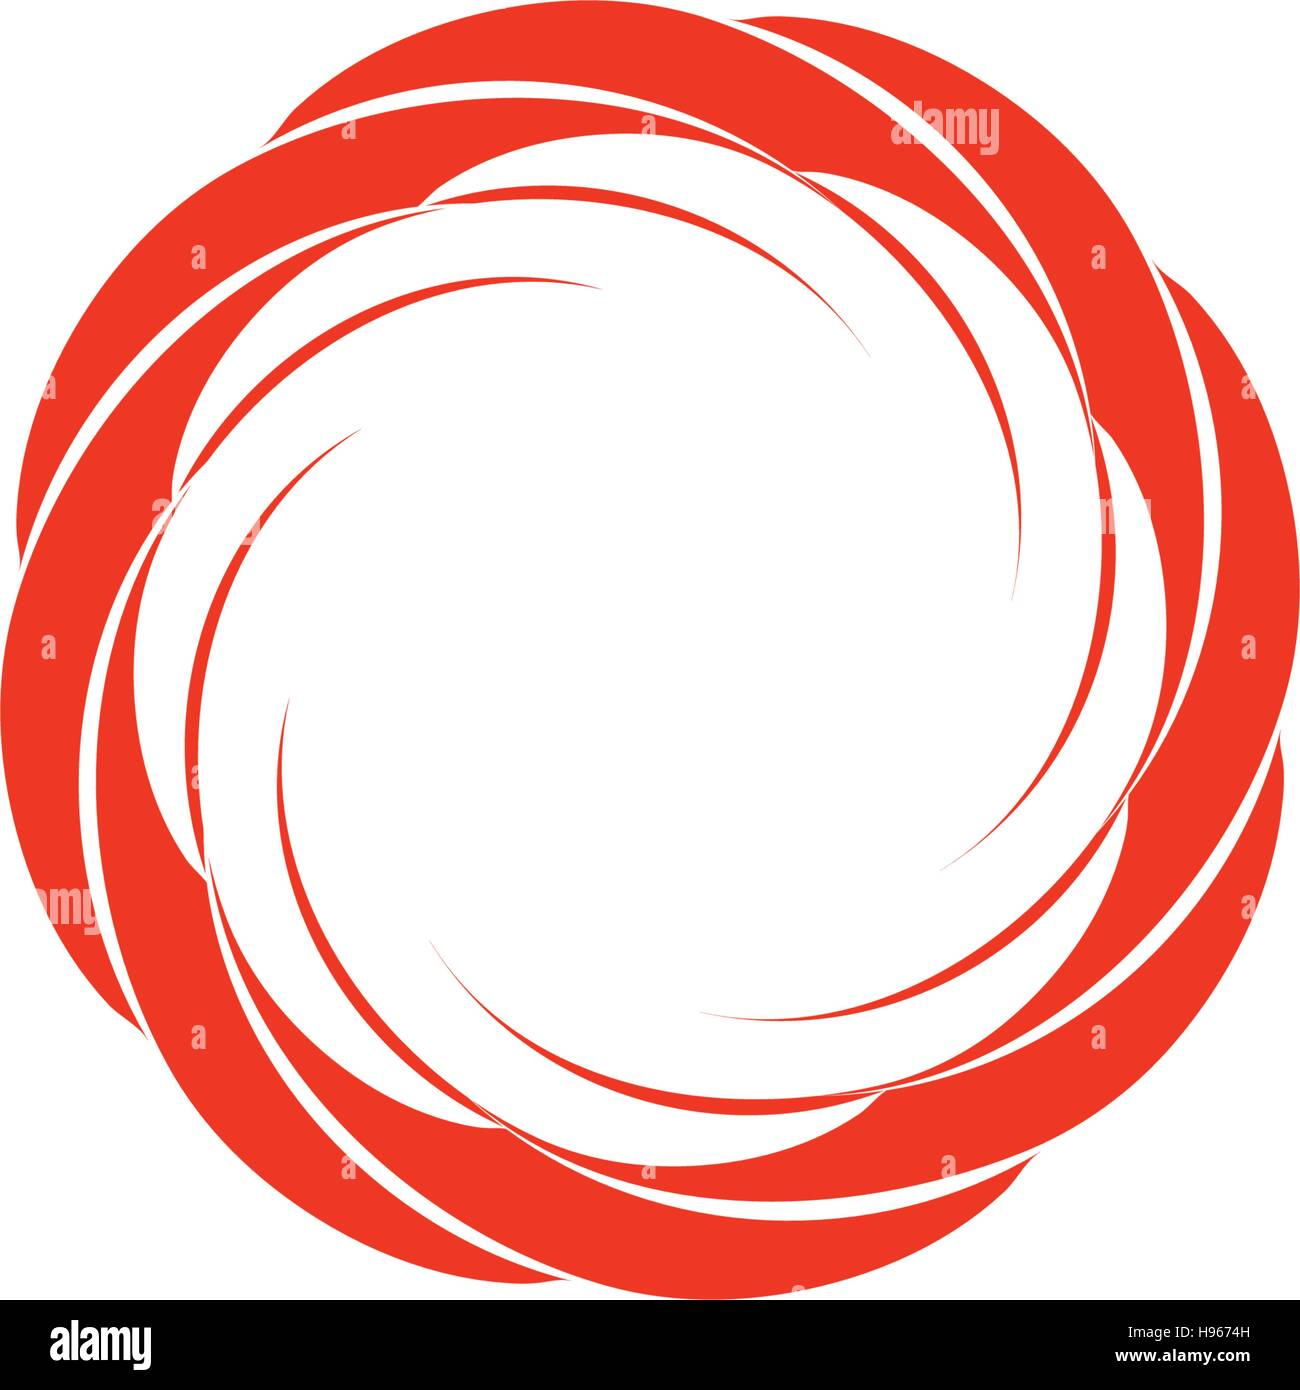 Isolated Abstract Red Color Circular Sun Logo Round Shape Logotype Swirl Tornado And Hurricane Icon Spining Hypnotic Spiral Sign Photo Lens Symbol